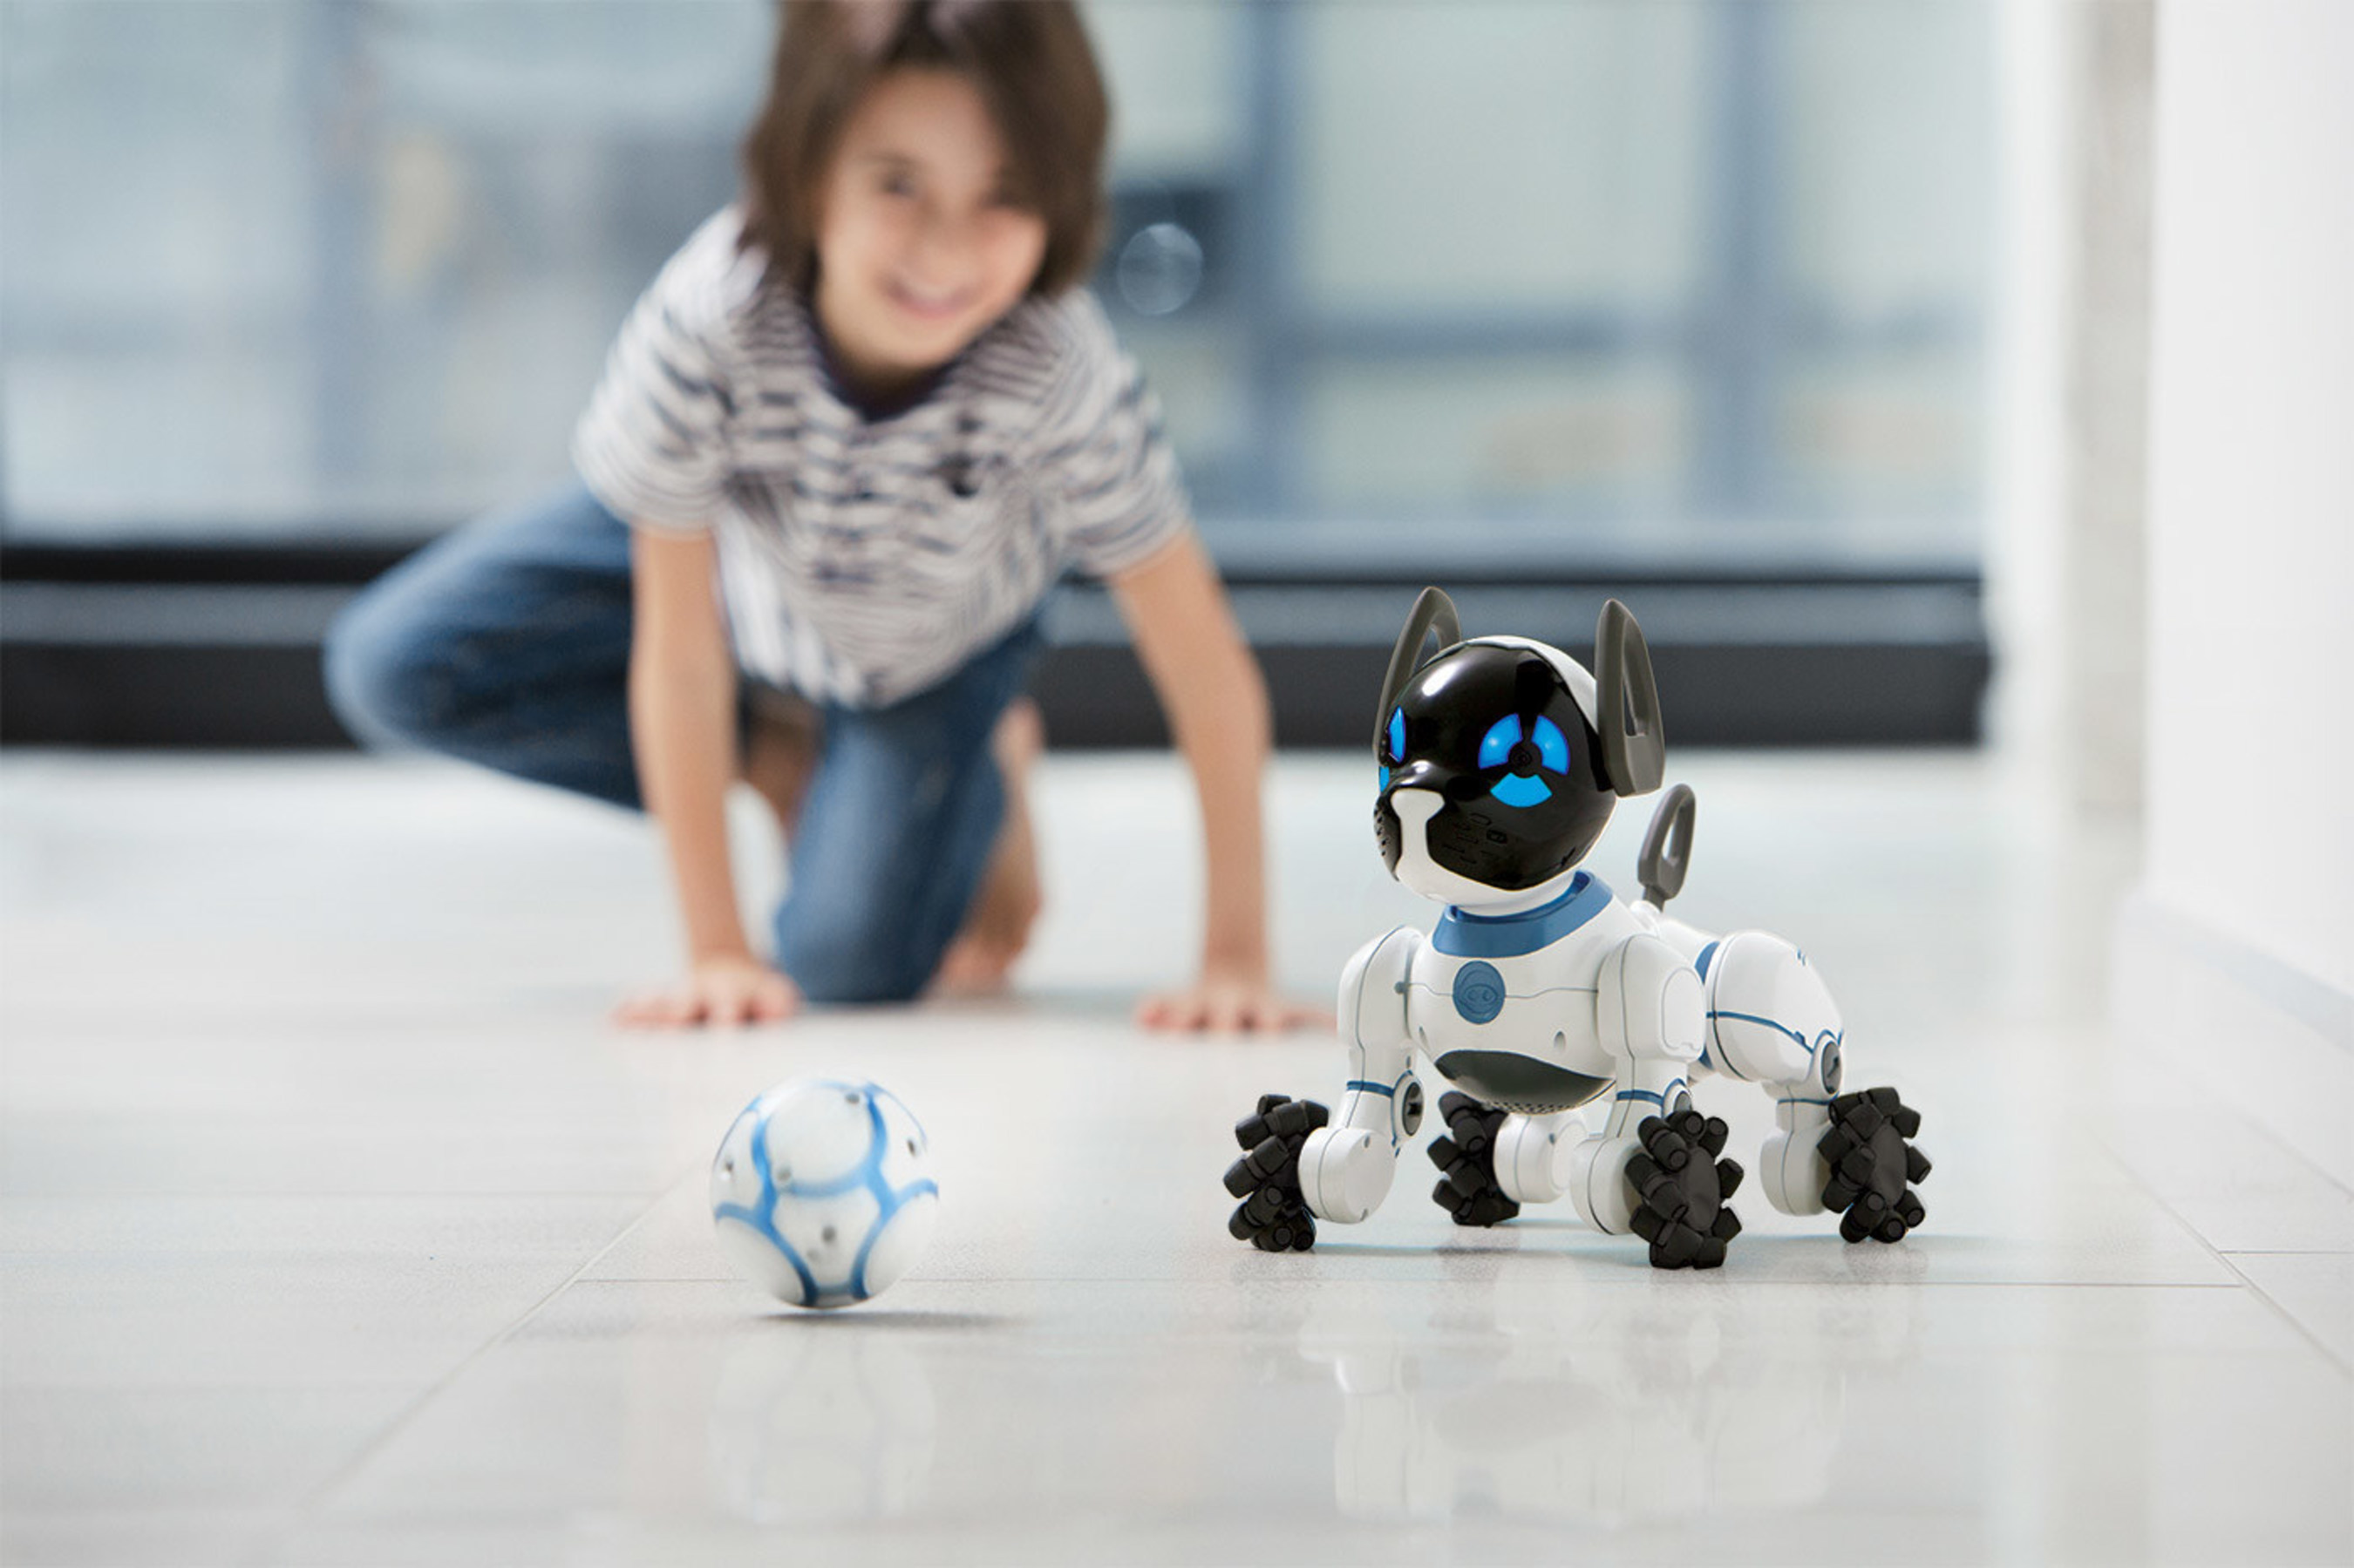 Play Fetch and Soccer with CHiP with the included SmartBall